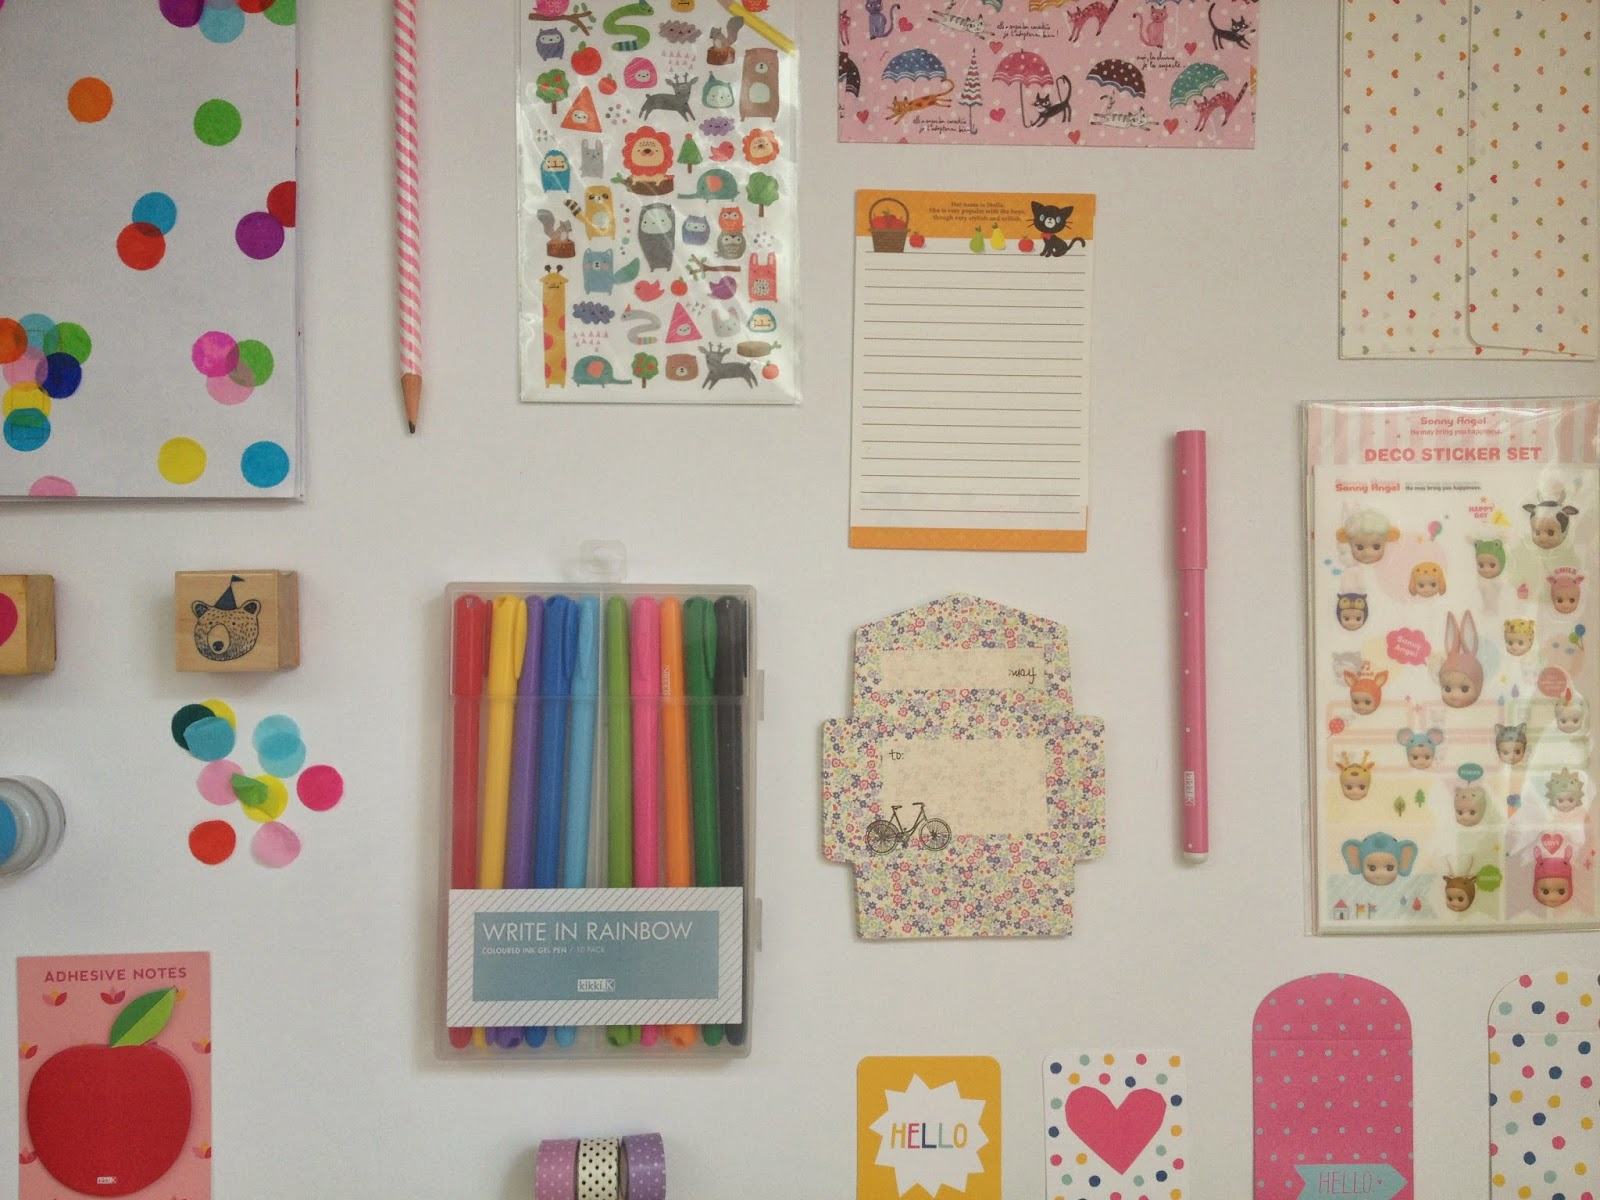 here are some of the things i like to keep in my letter writing kit i like to keep envelopes pens stamps pencils stickers washi tape paper and sticky